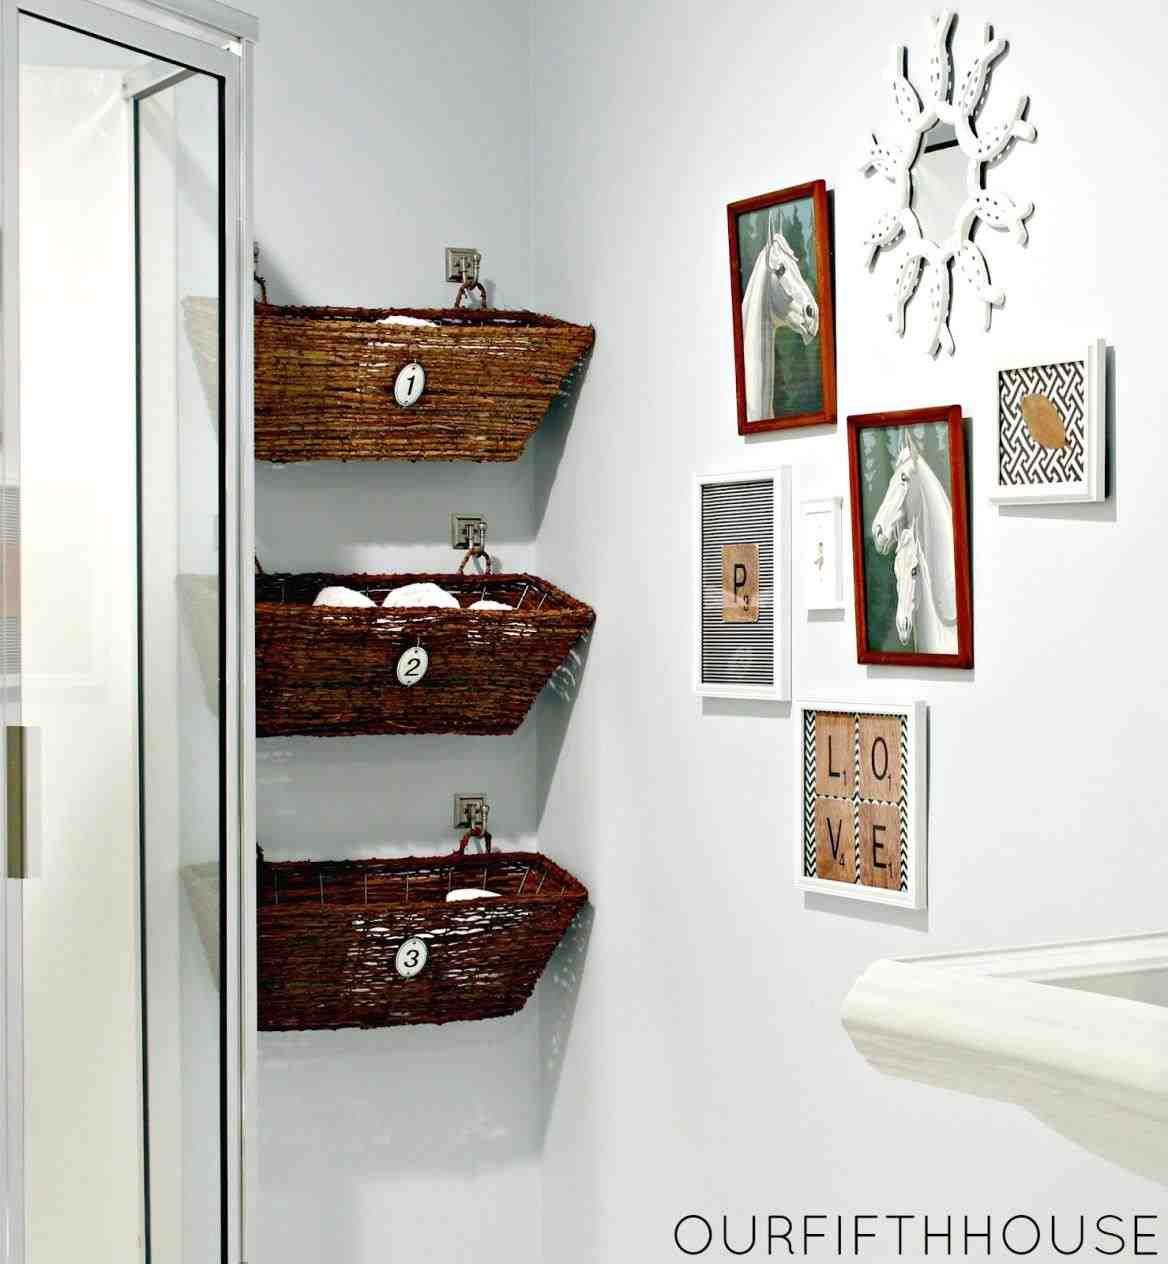 This Bathroom Wall Storage Baskets Ergonomic Wall Mounted